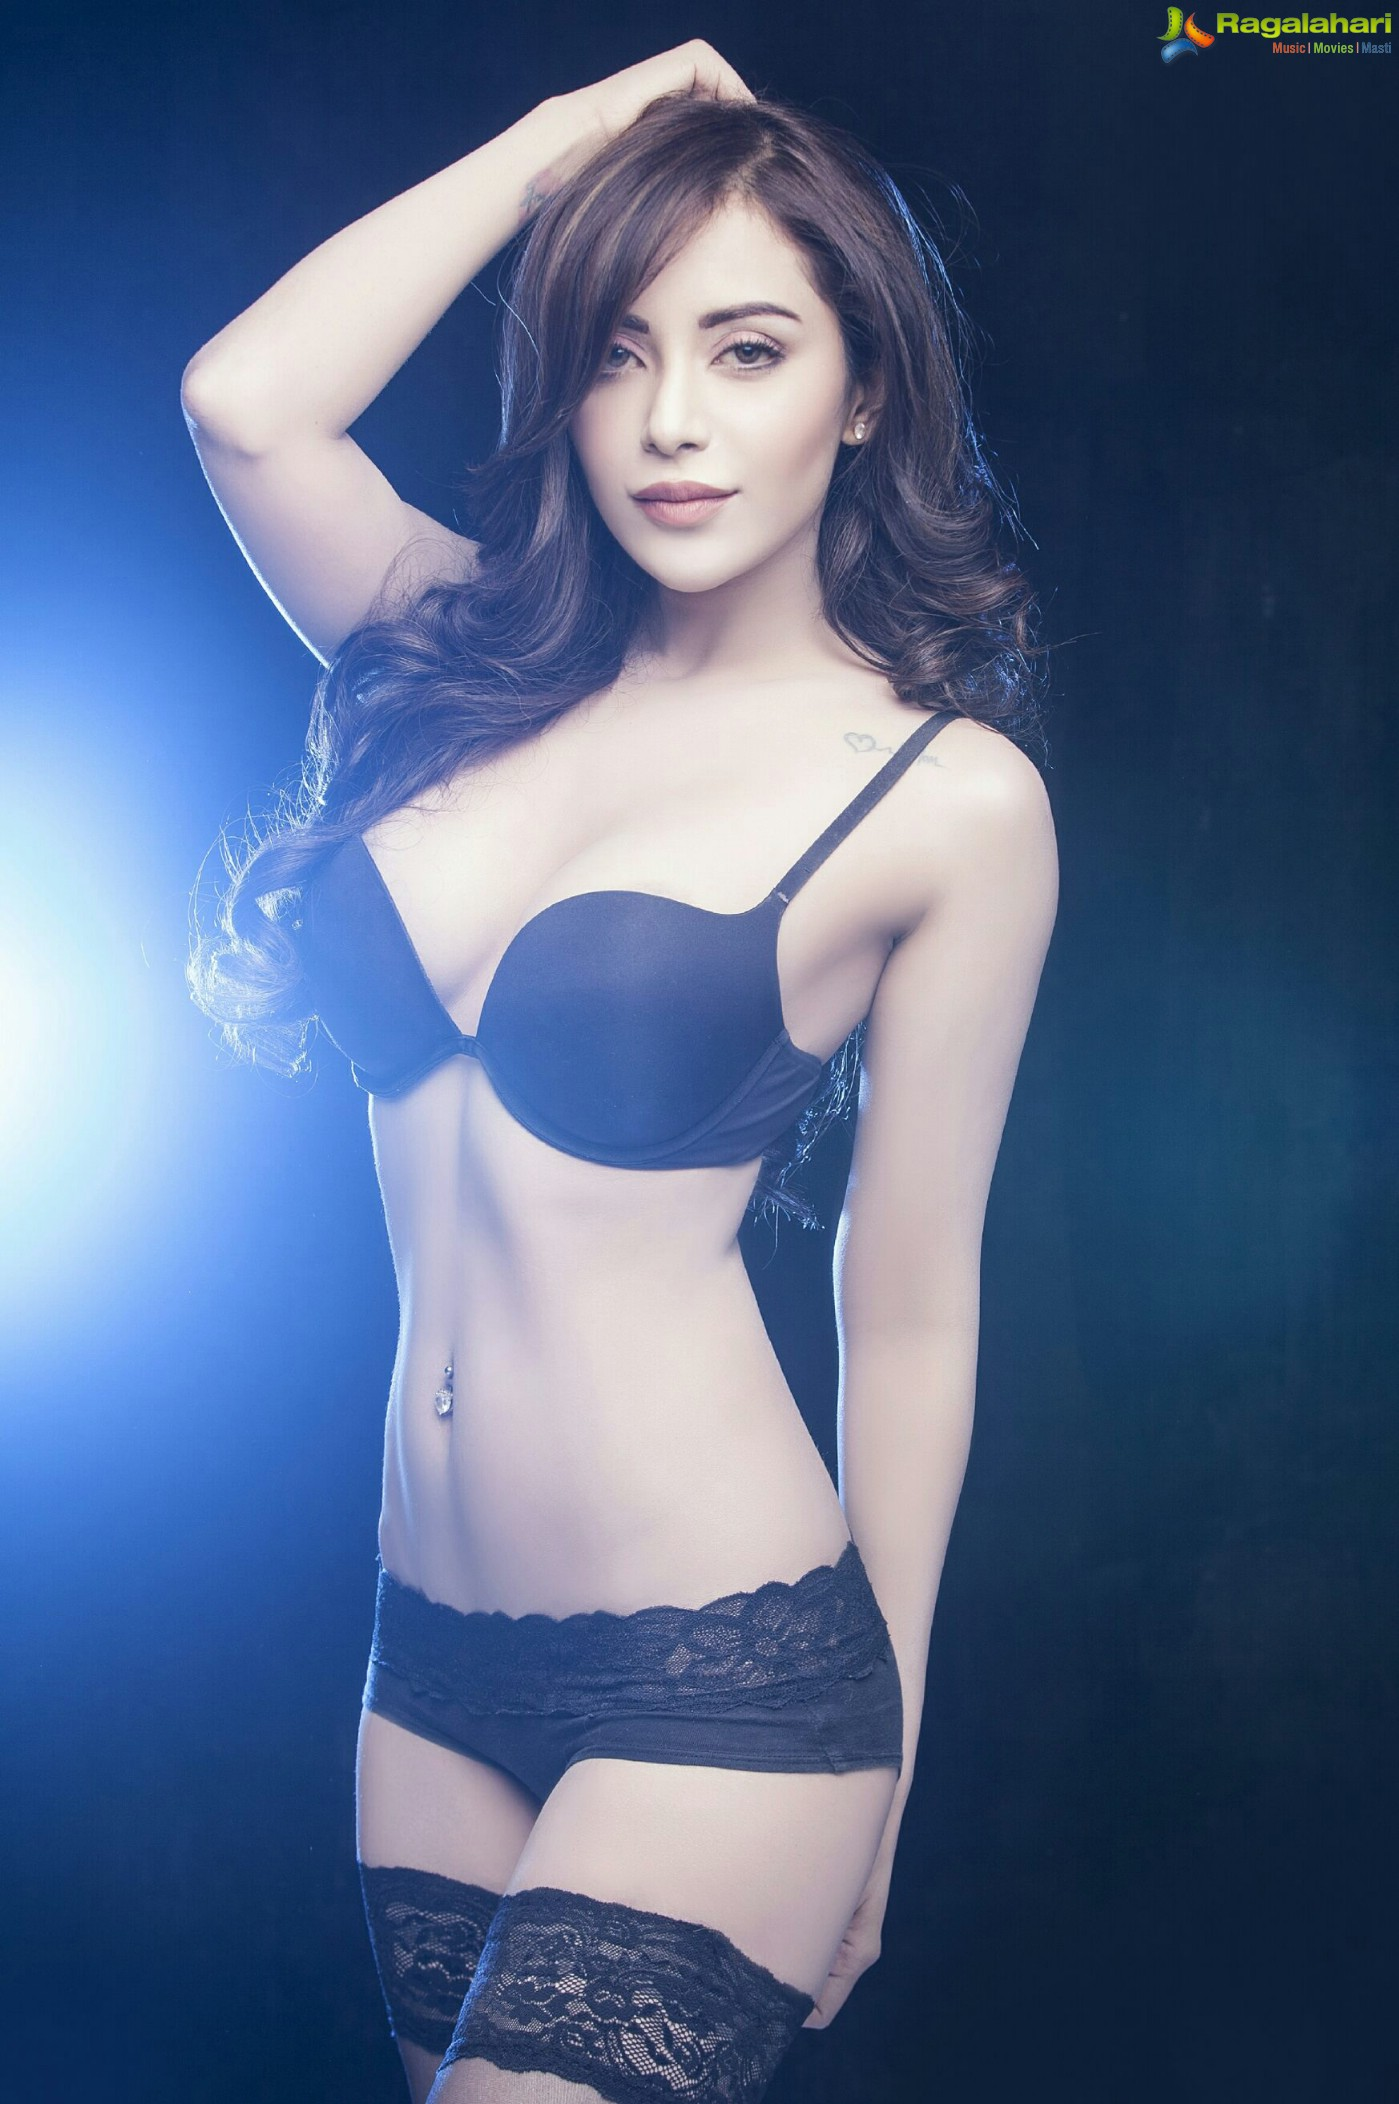 angela krislinzki hot photos